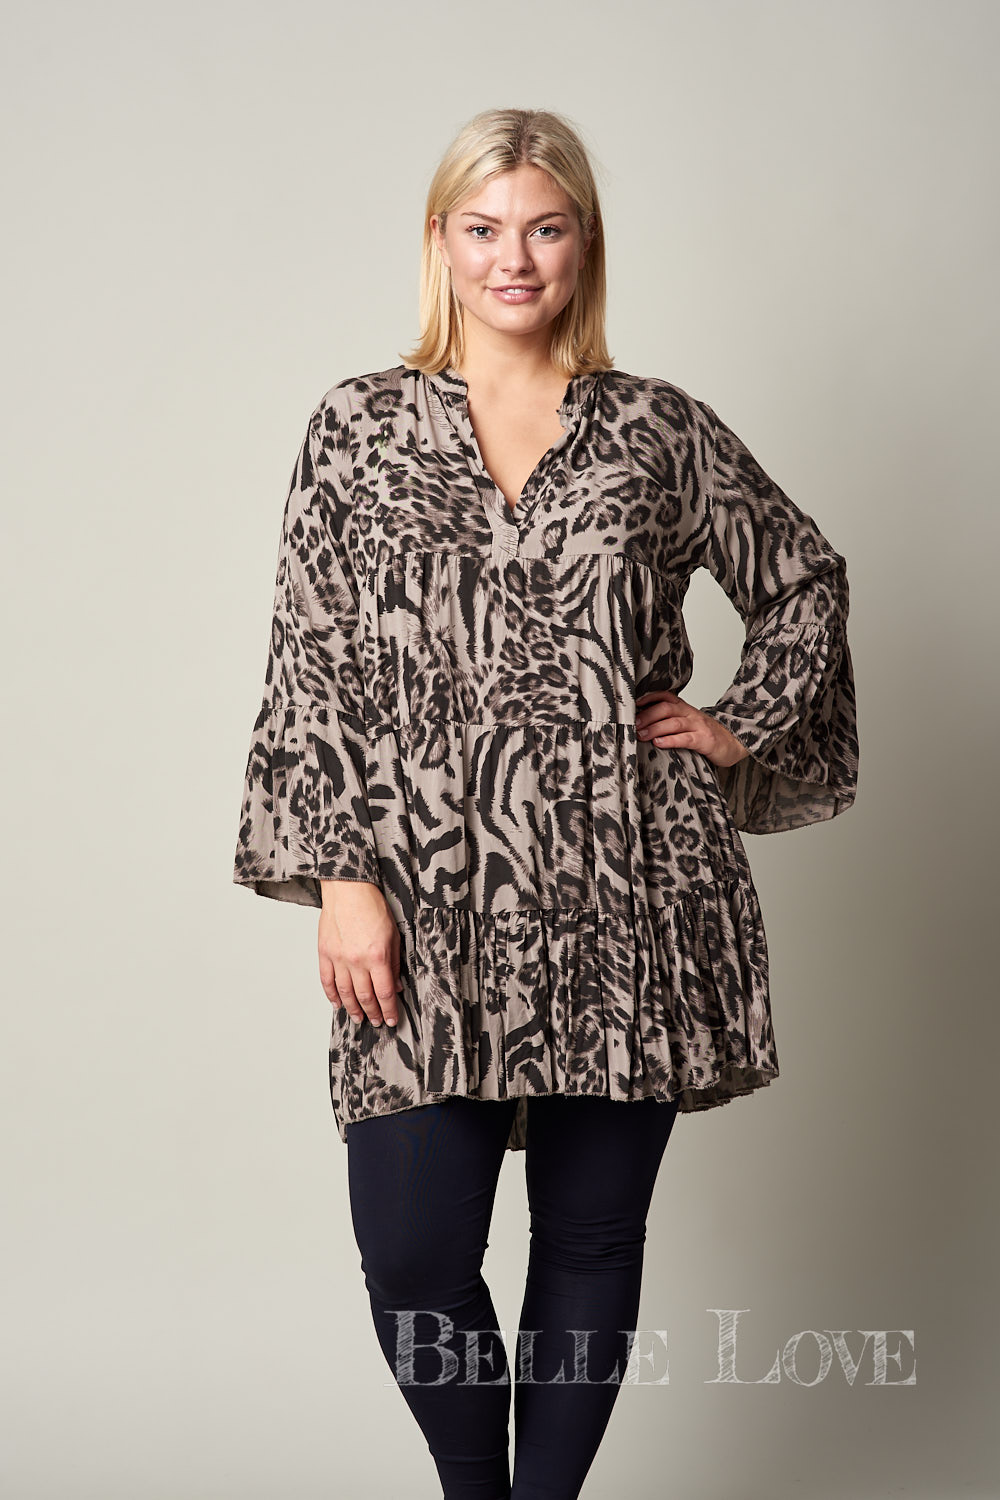 Belle love Italy Animal Print Smock Dress